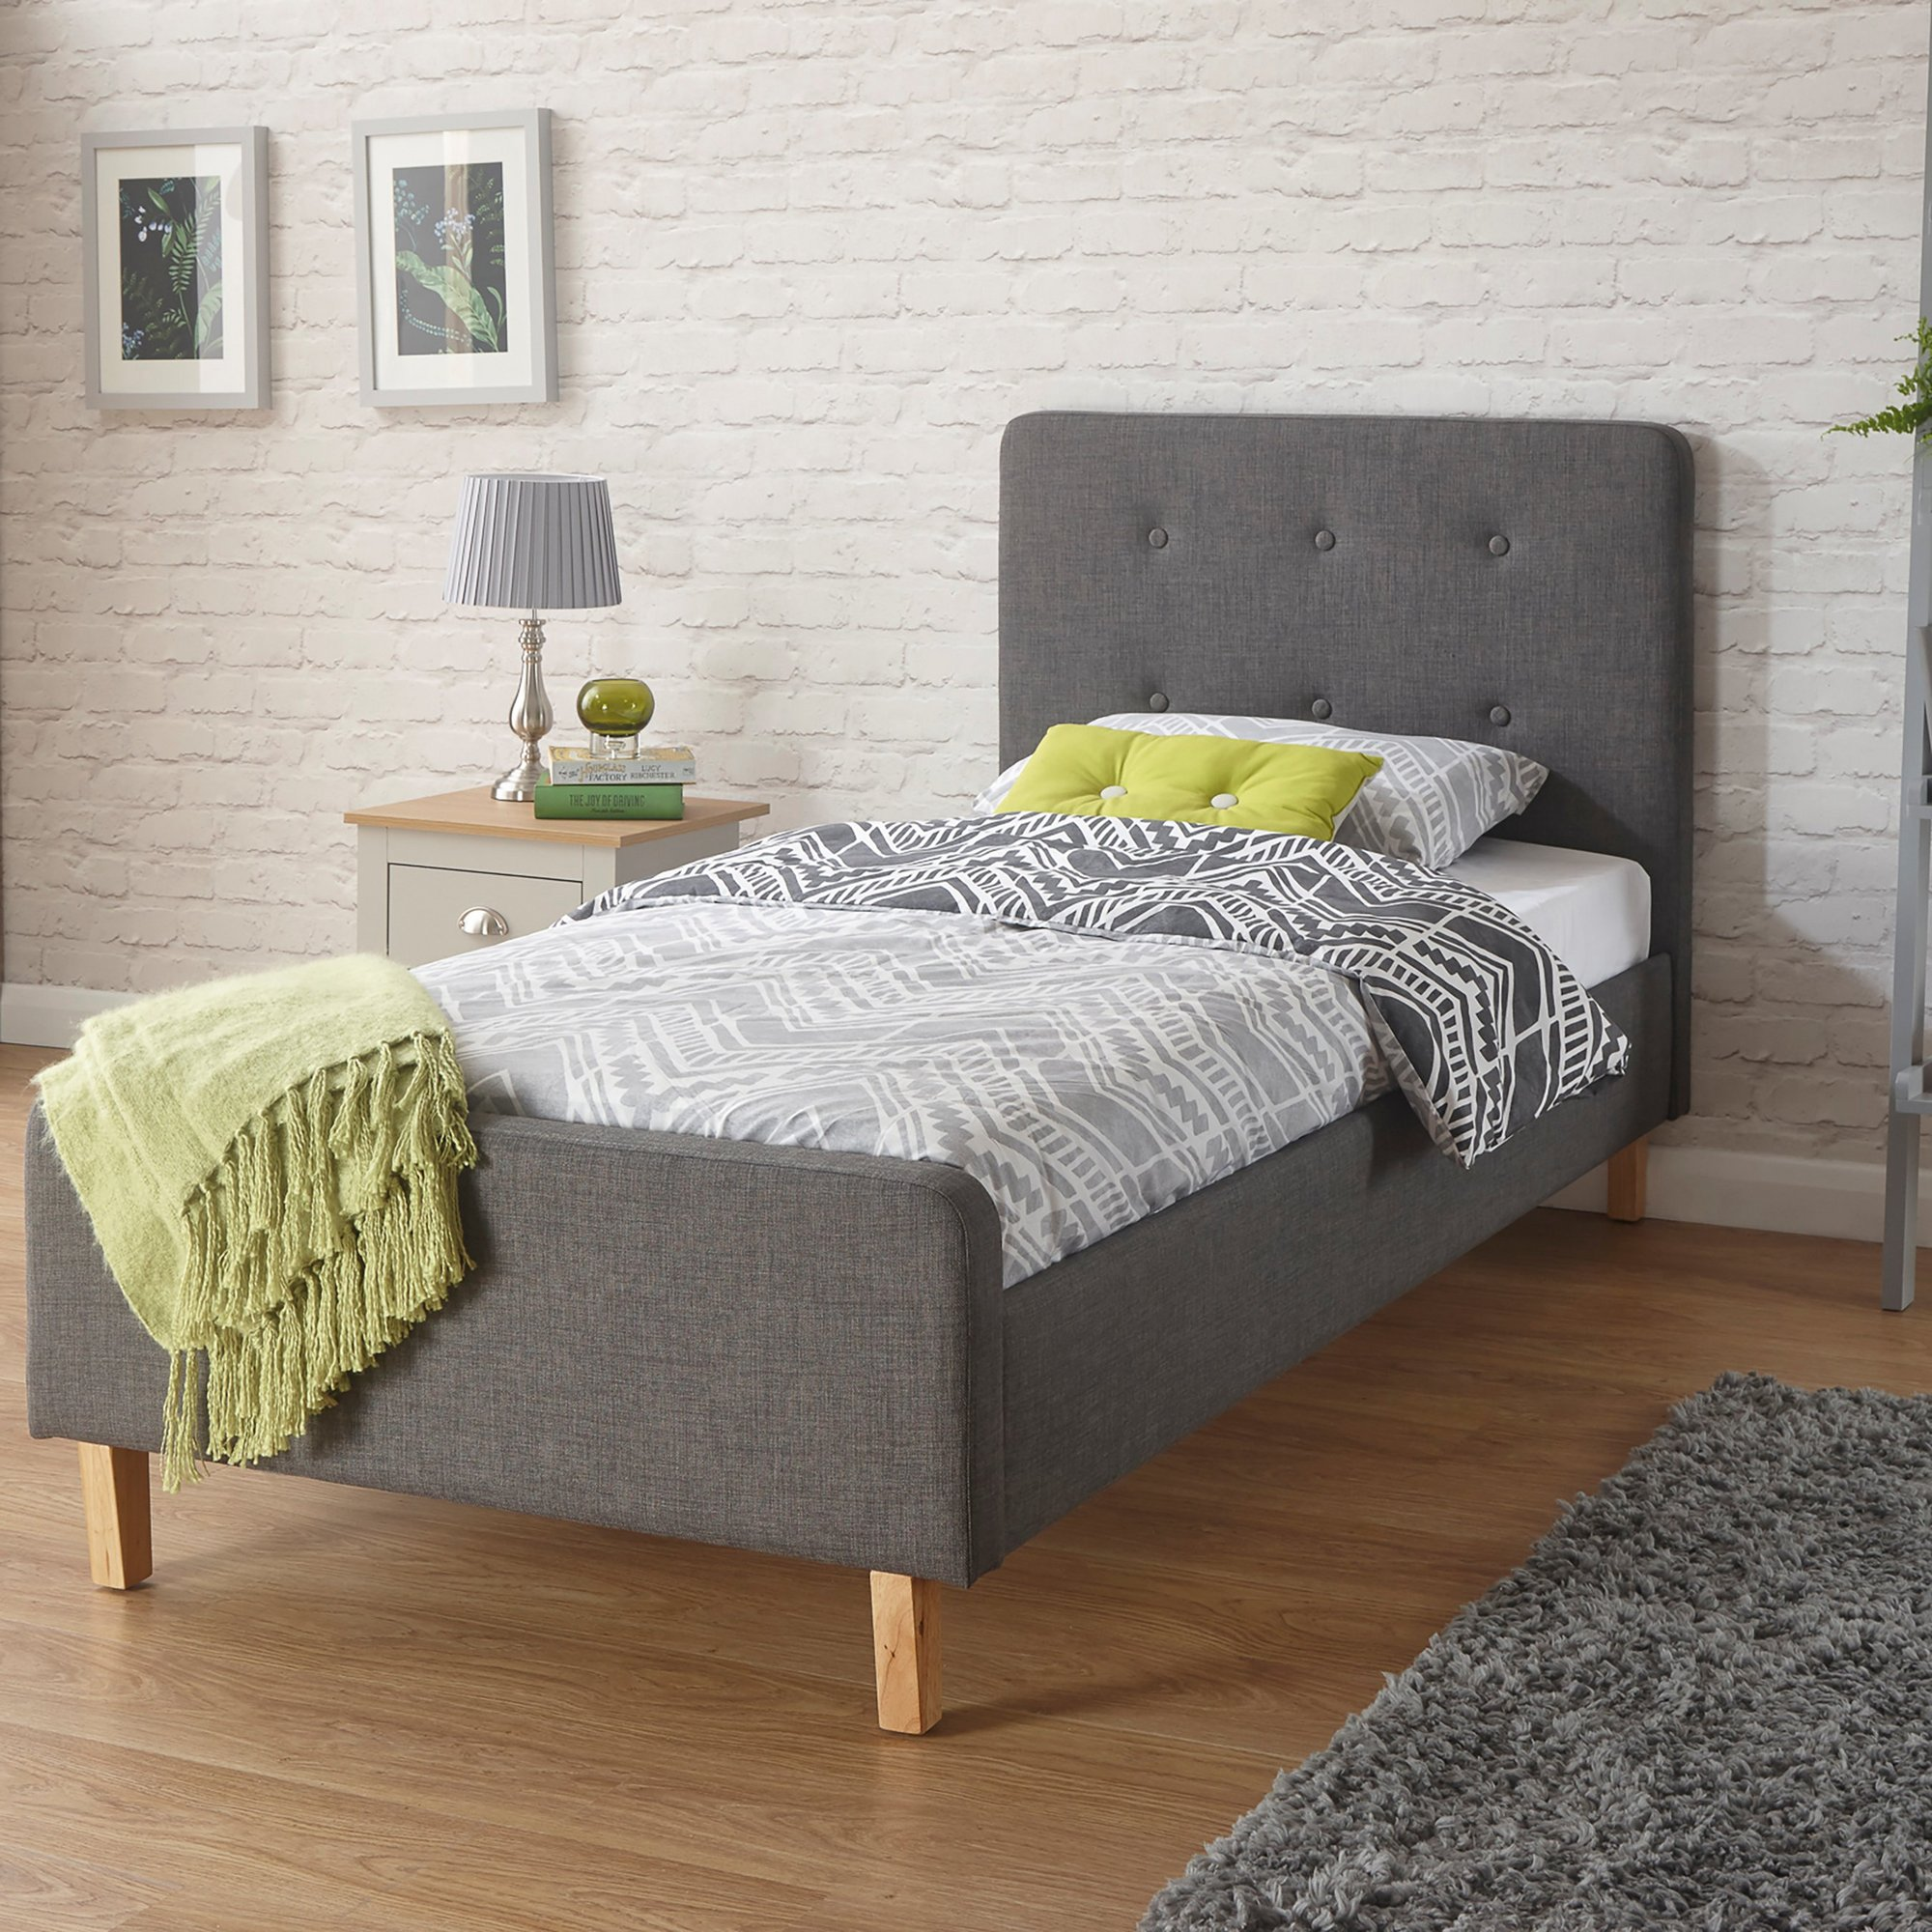 Image of Ashbourne Bed with Mattress